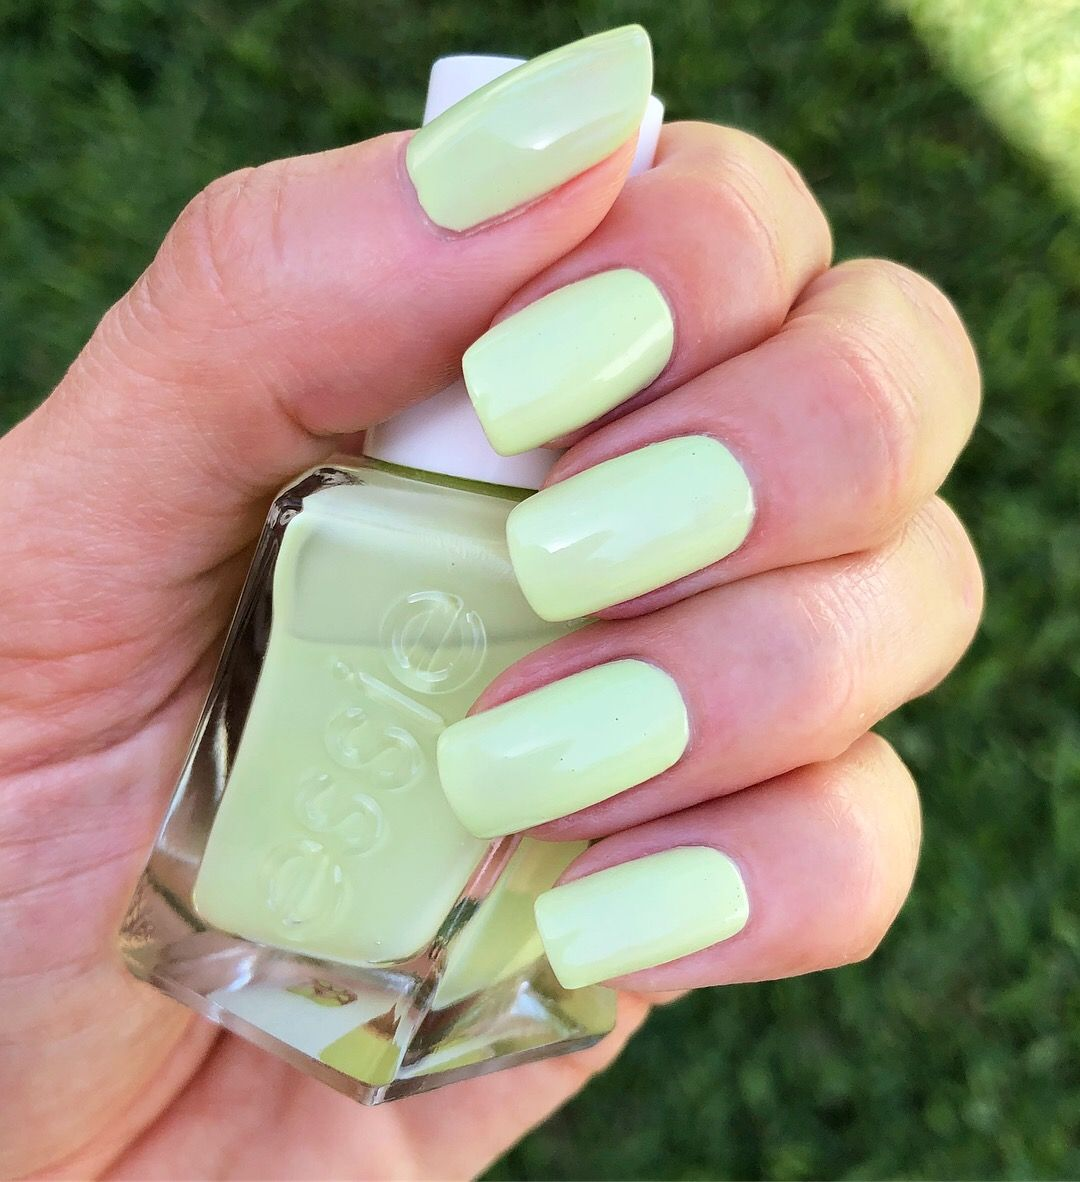 Essie Gel Couture - Take a Walk - lime green chartreuse nails ...